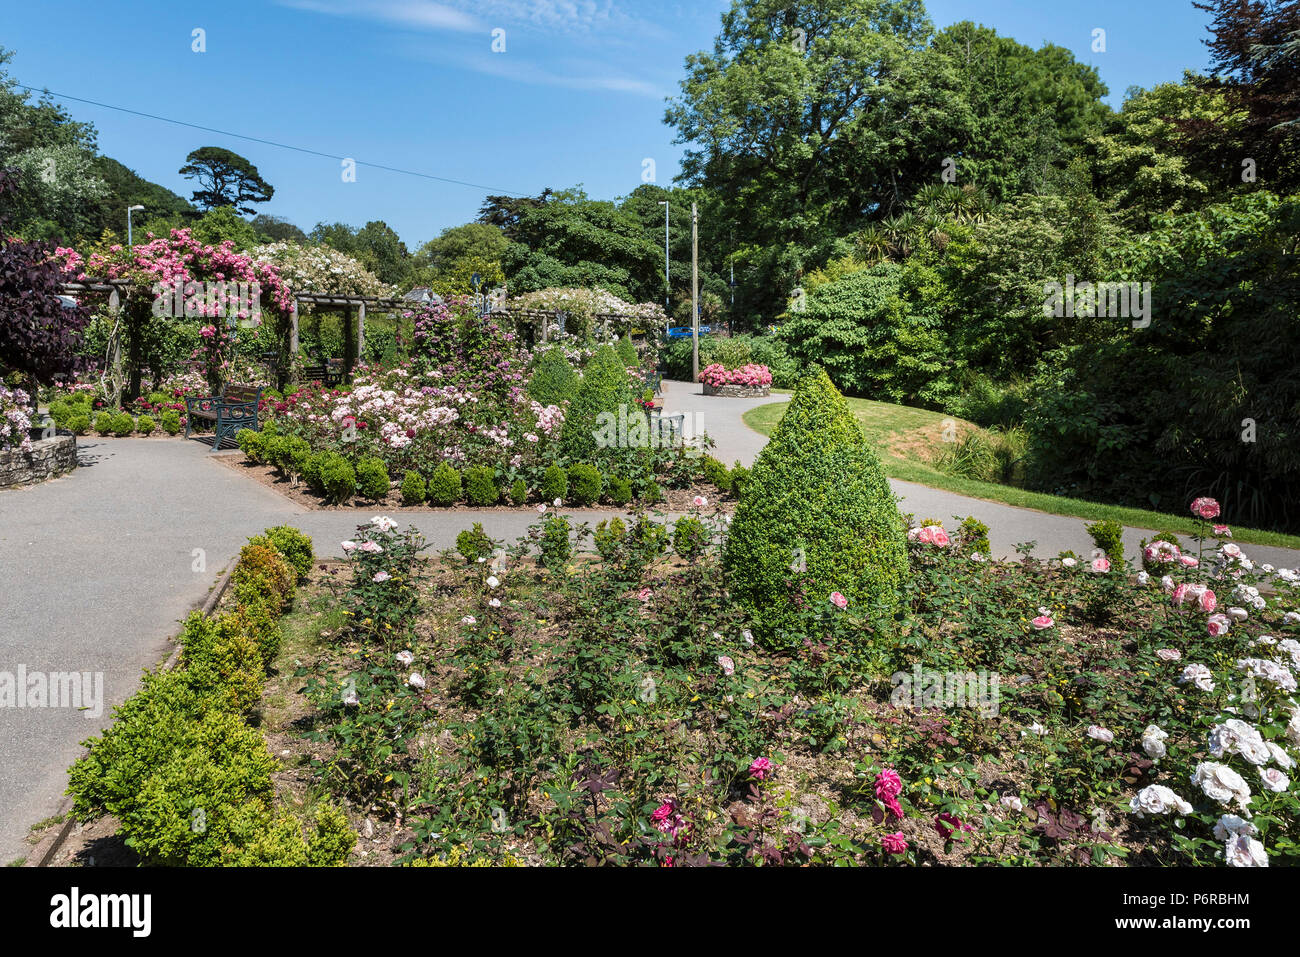 Roses in full bloom in the award winning Rose Garden in Trenance Park in Newquay in Cornwall. - Stock Image